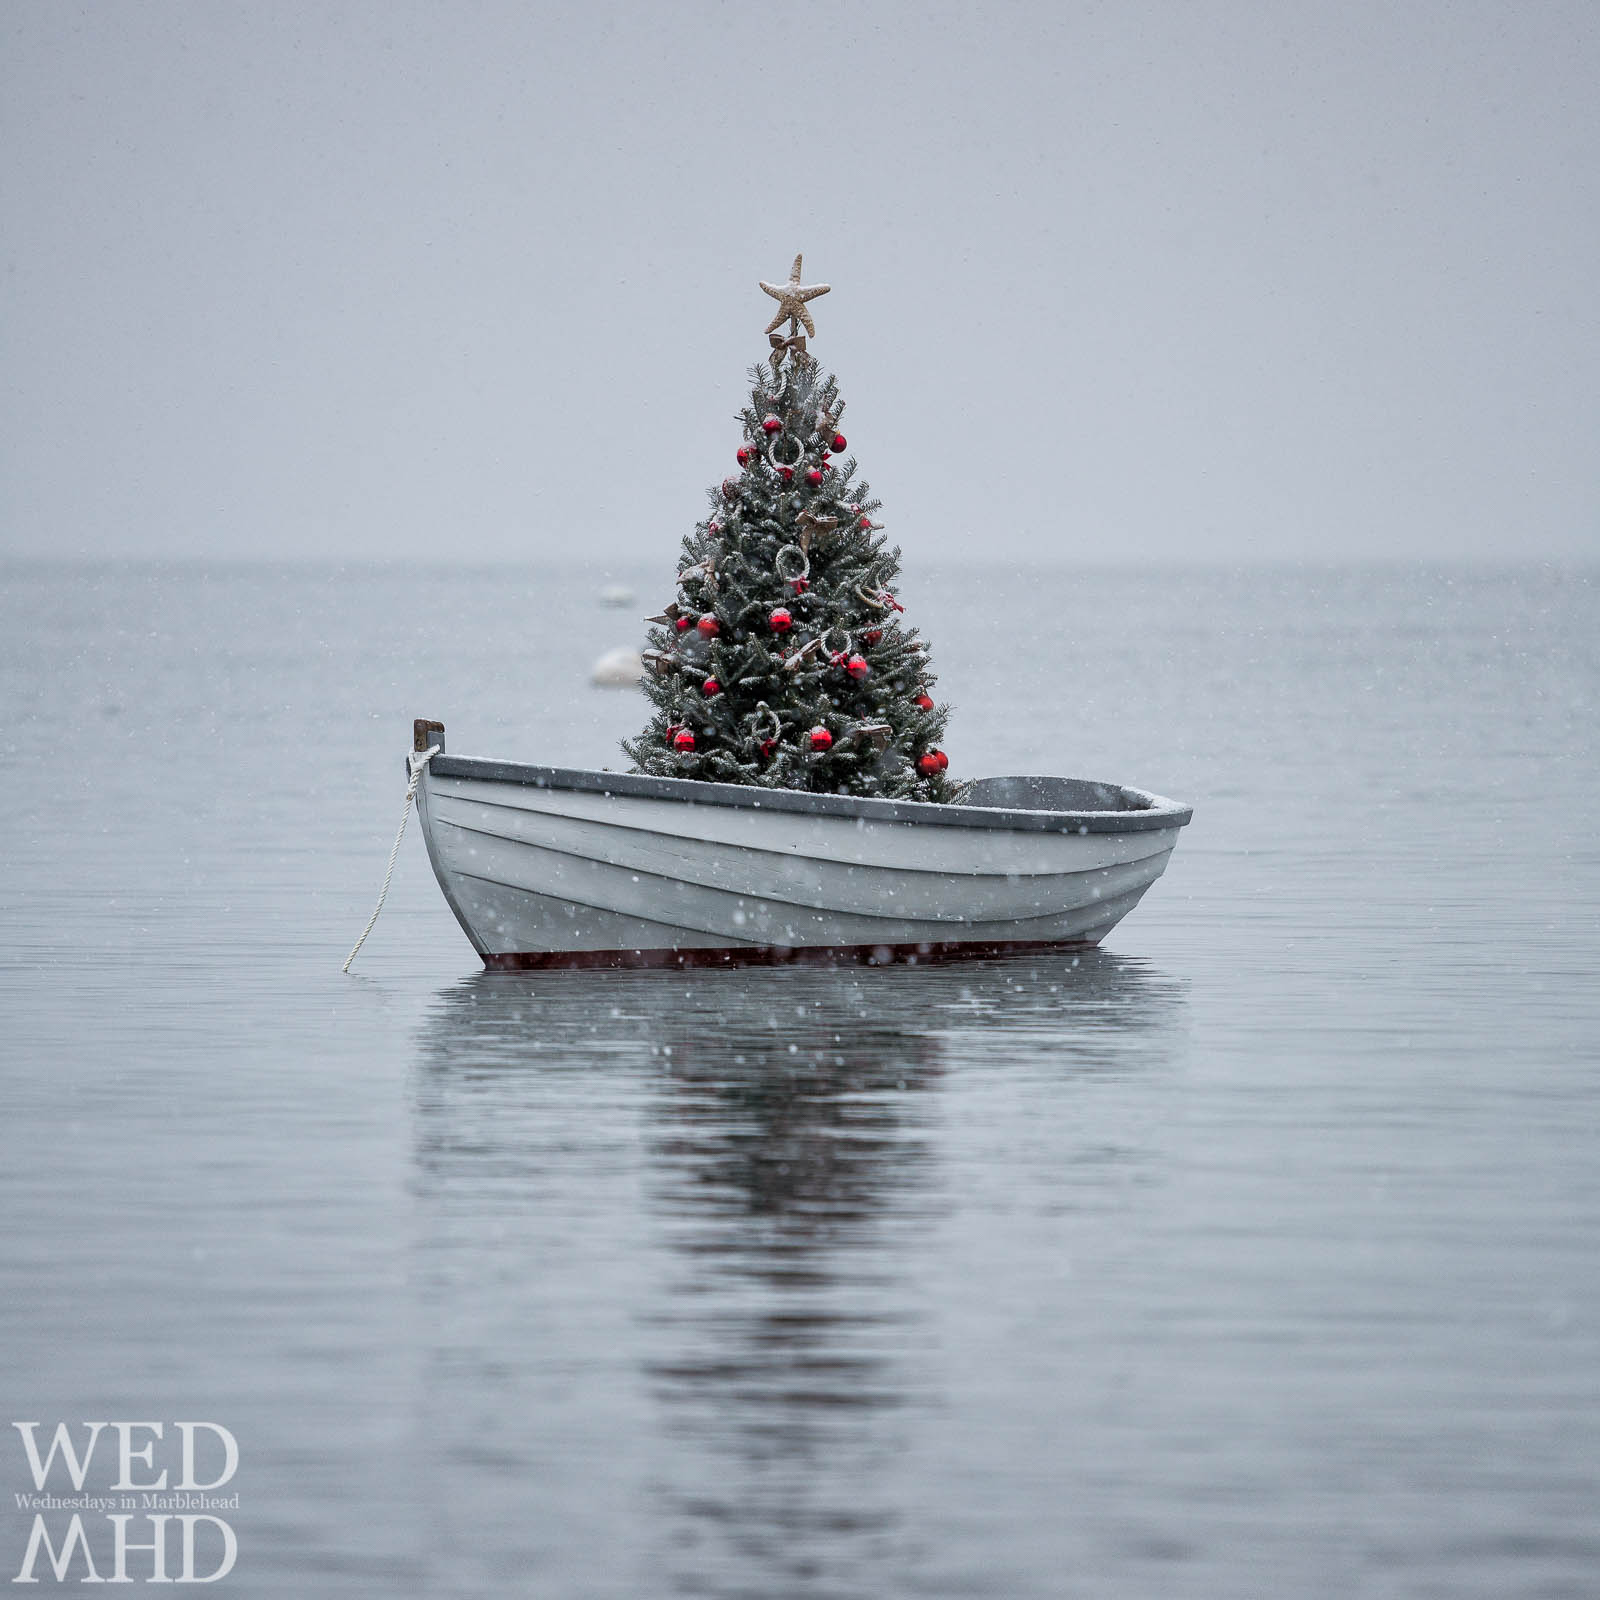 A small boat in Little Harbor holds a beautifully decorated tree in this view of Christmas at Sea during the first snow of the season